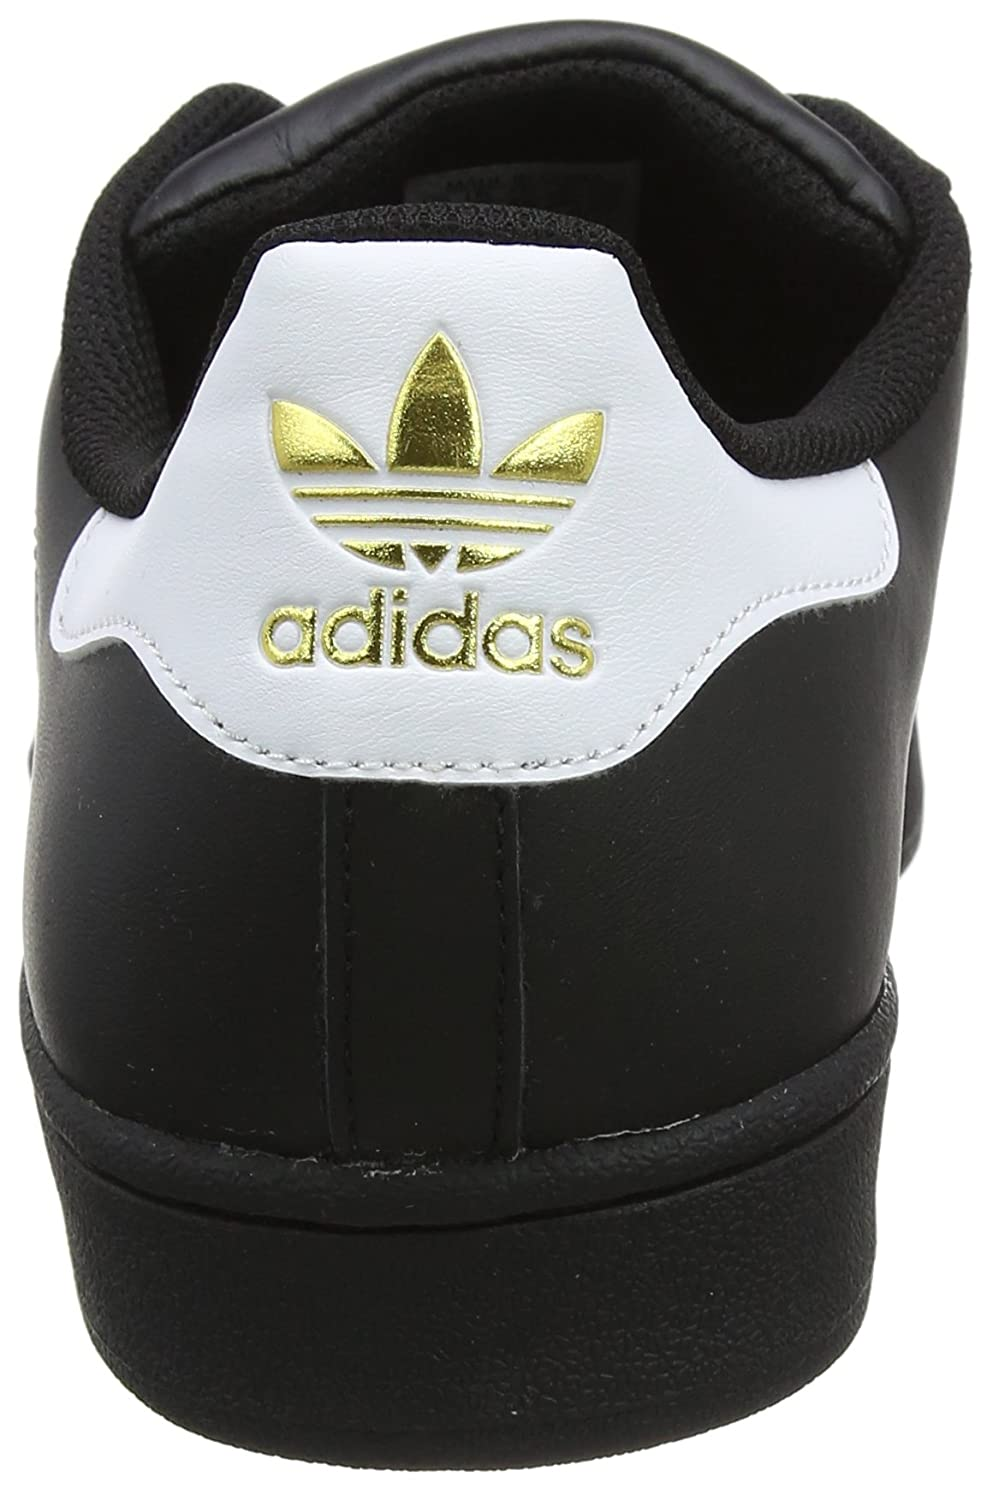 adidas Originals Superstar, Zapatillas Unisex Adulto: Amazon.es: Zapatos y complementos